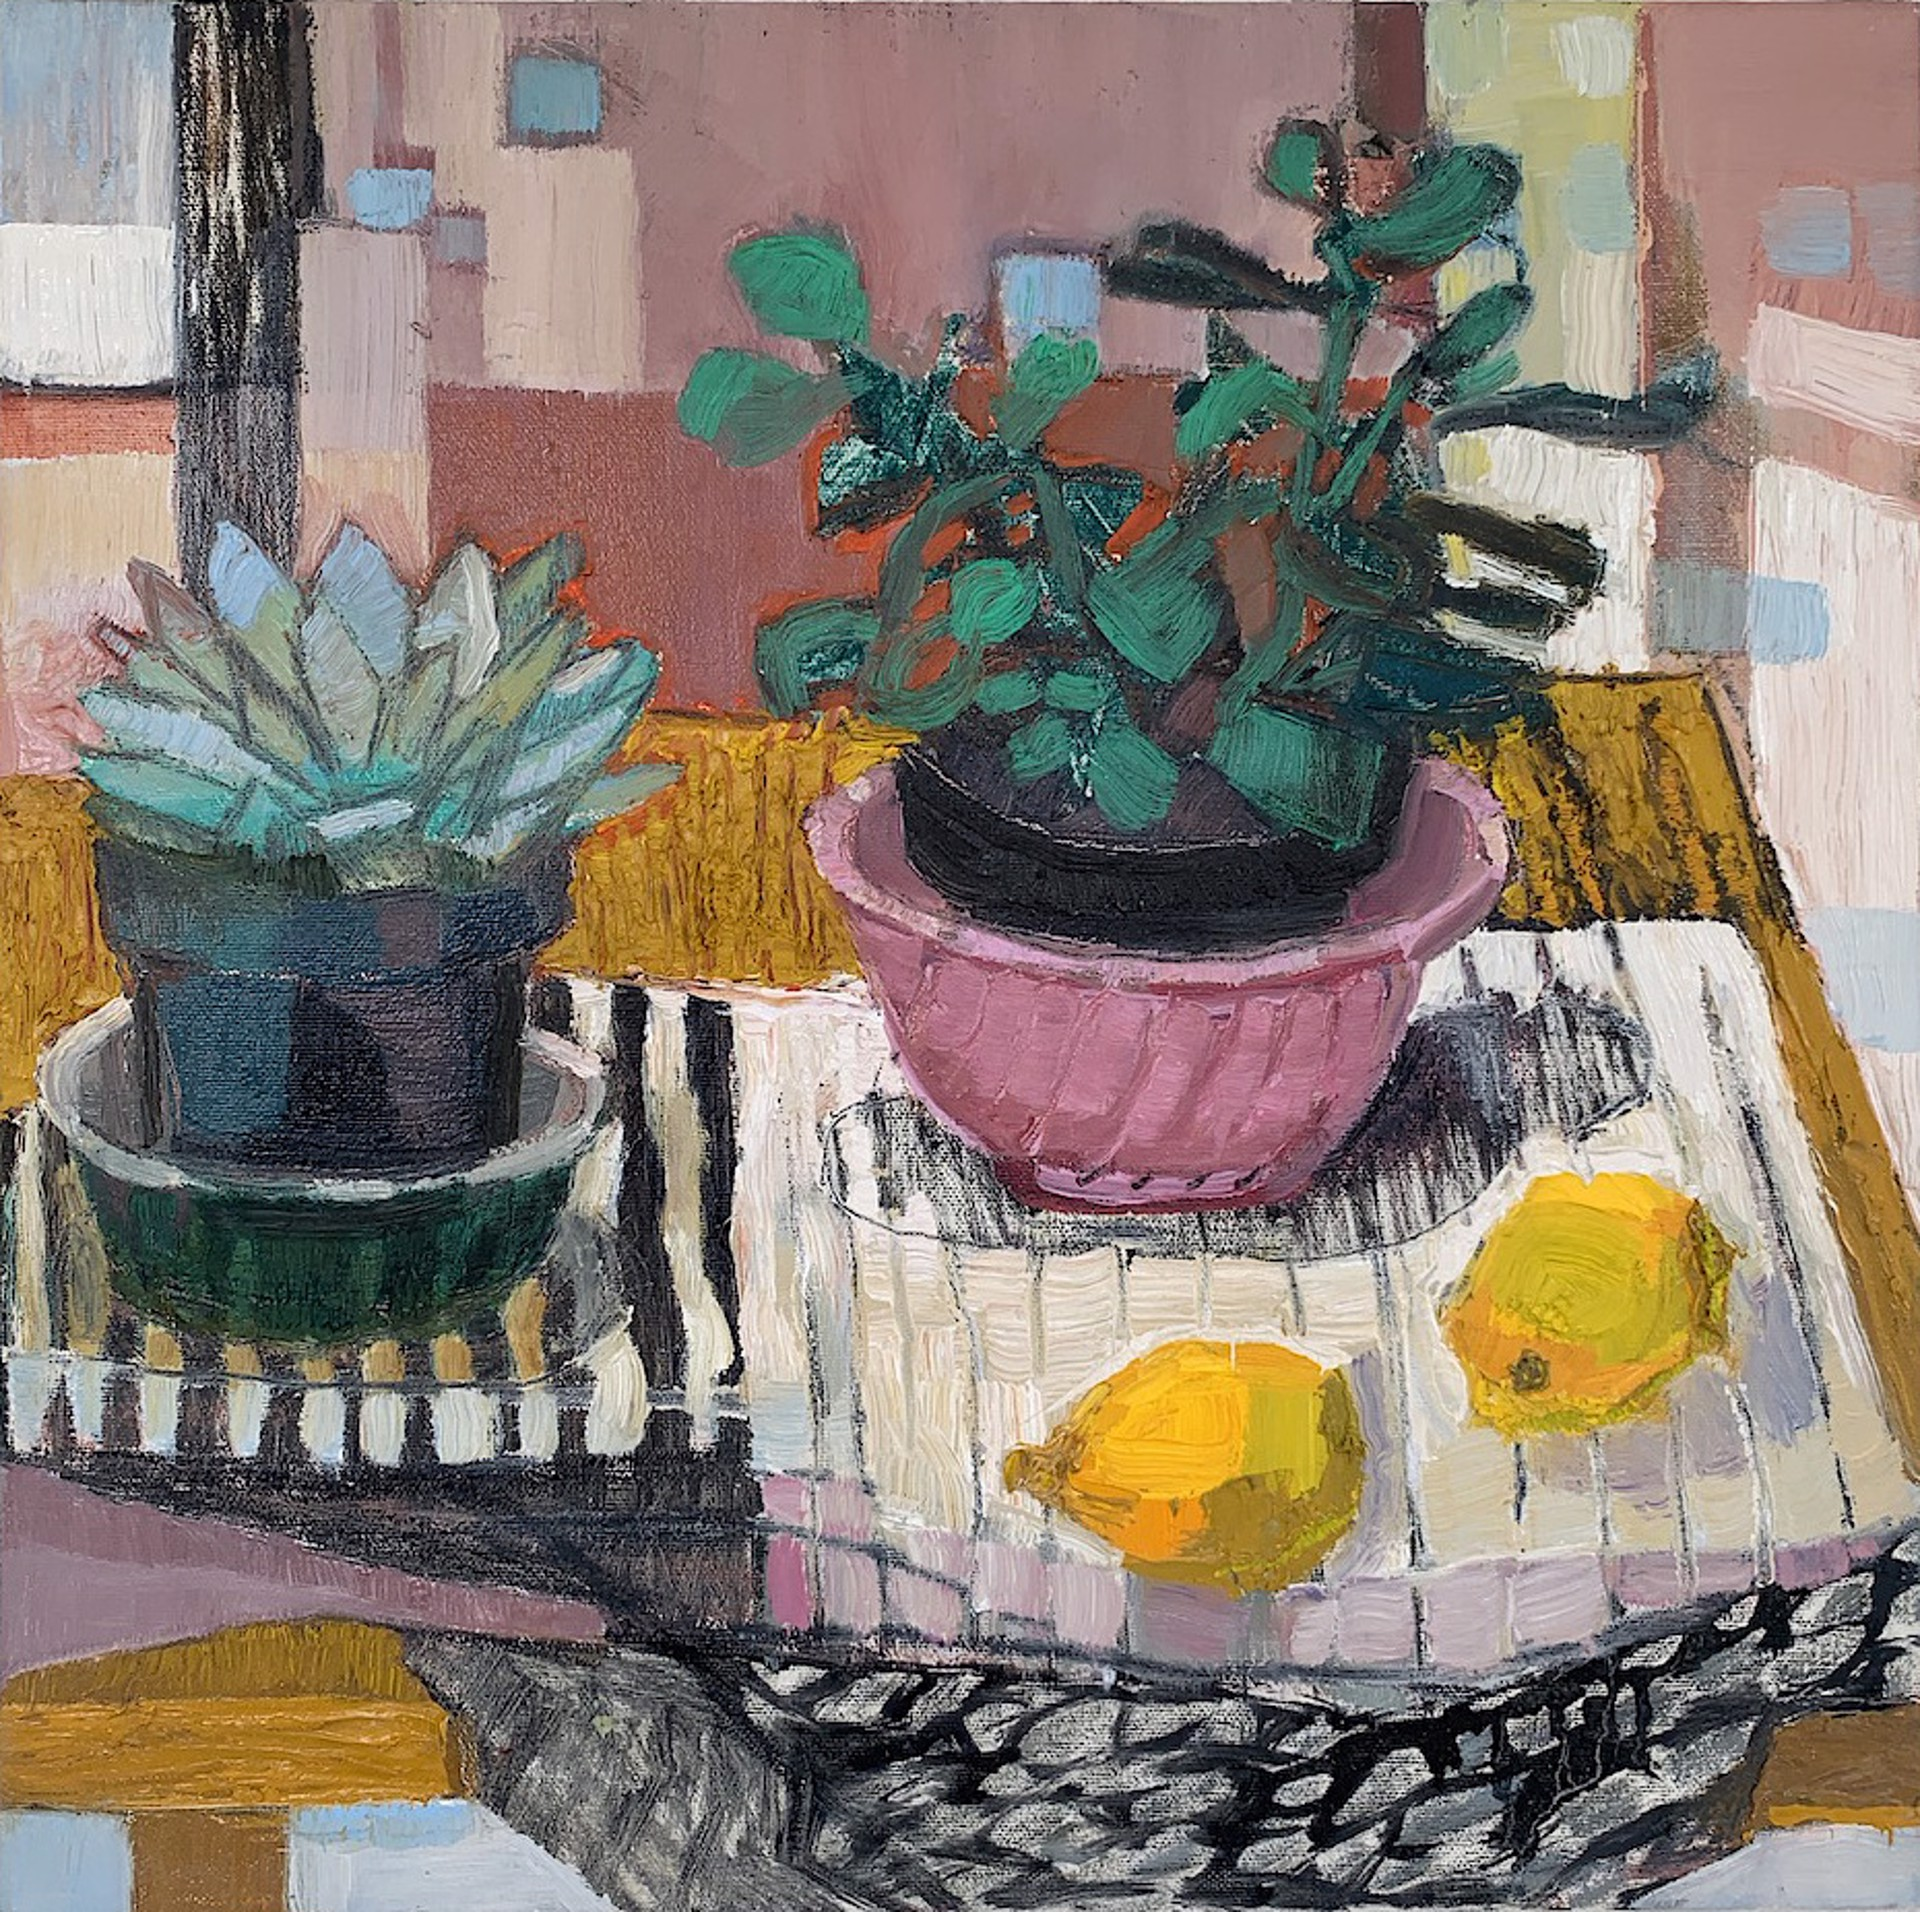 Succulents and Lemons by Maggie Shepherd